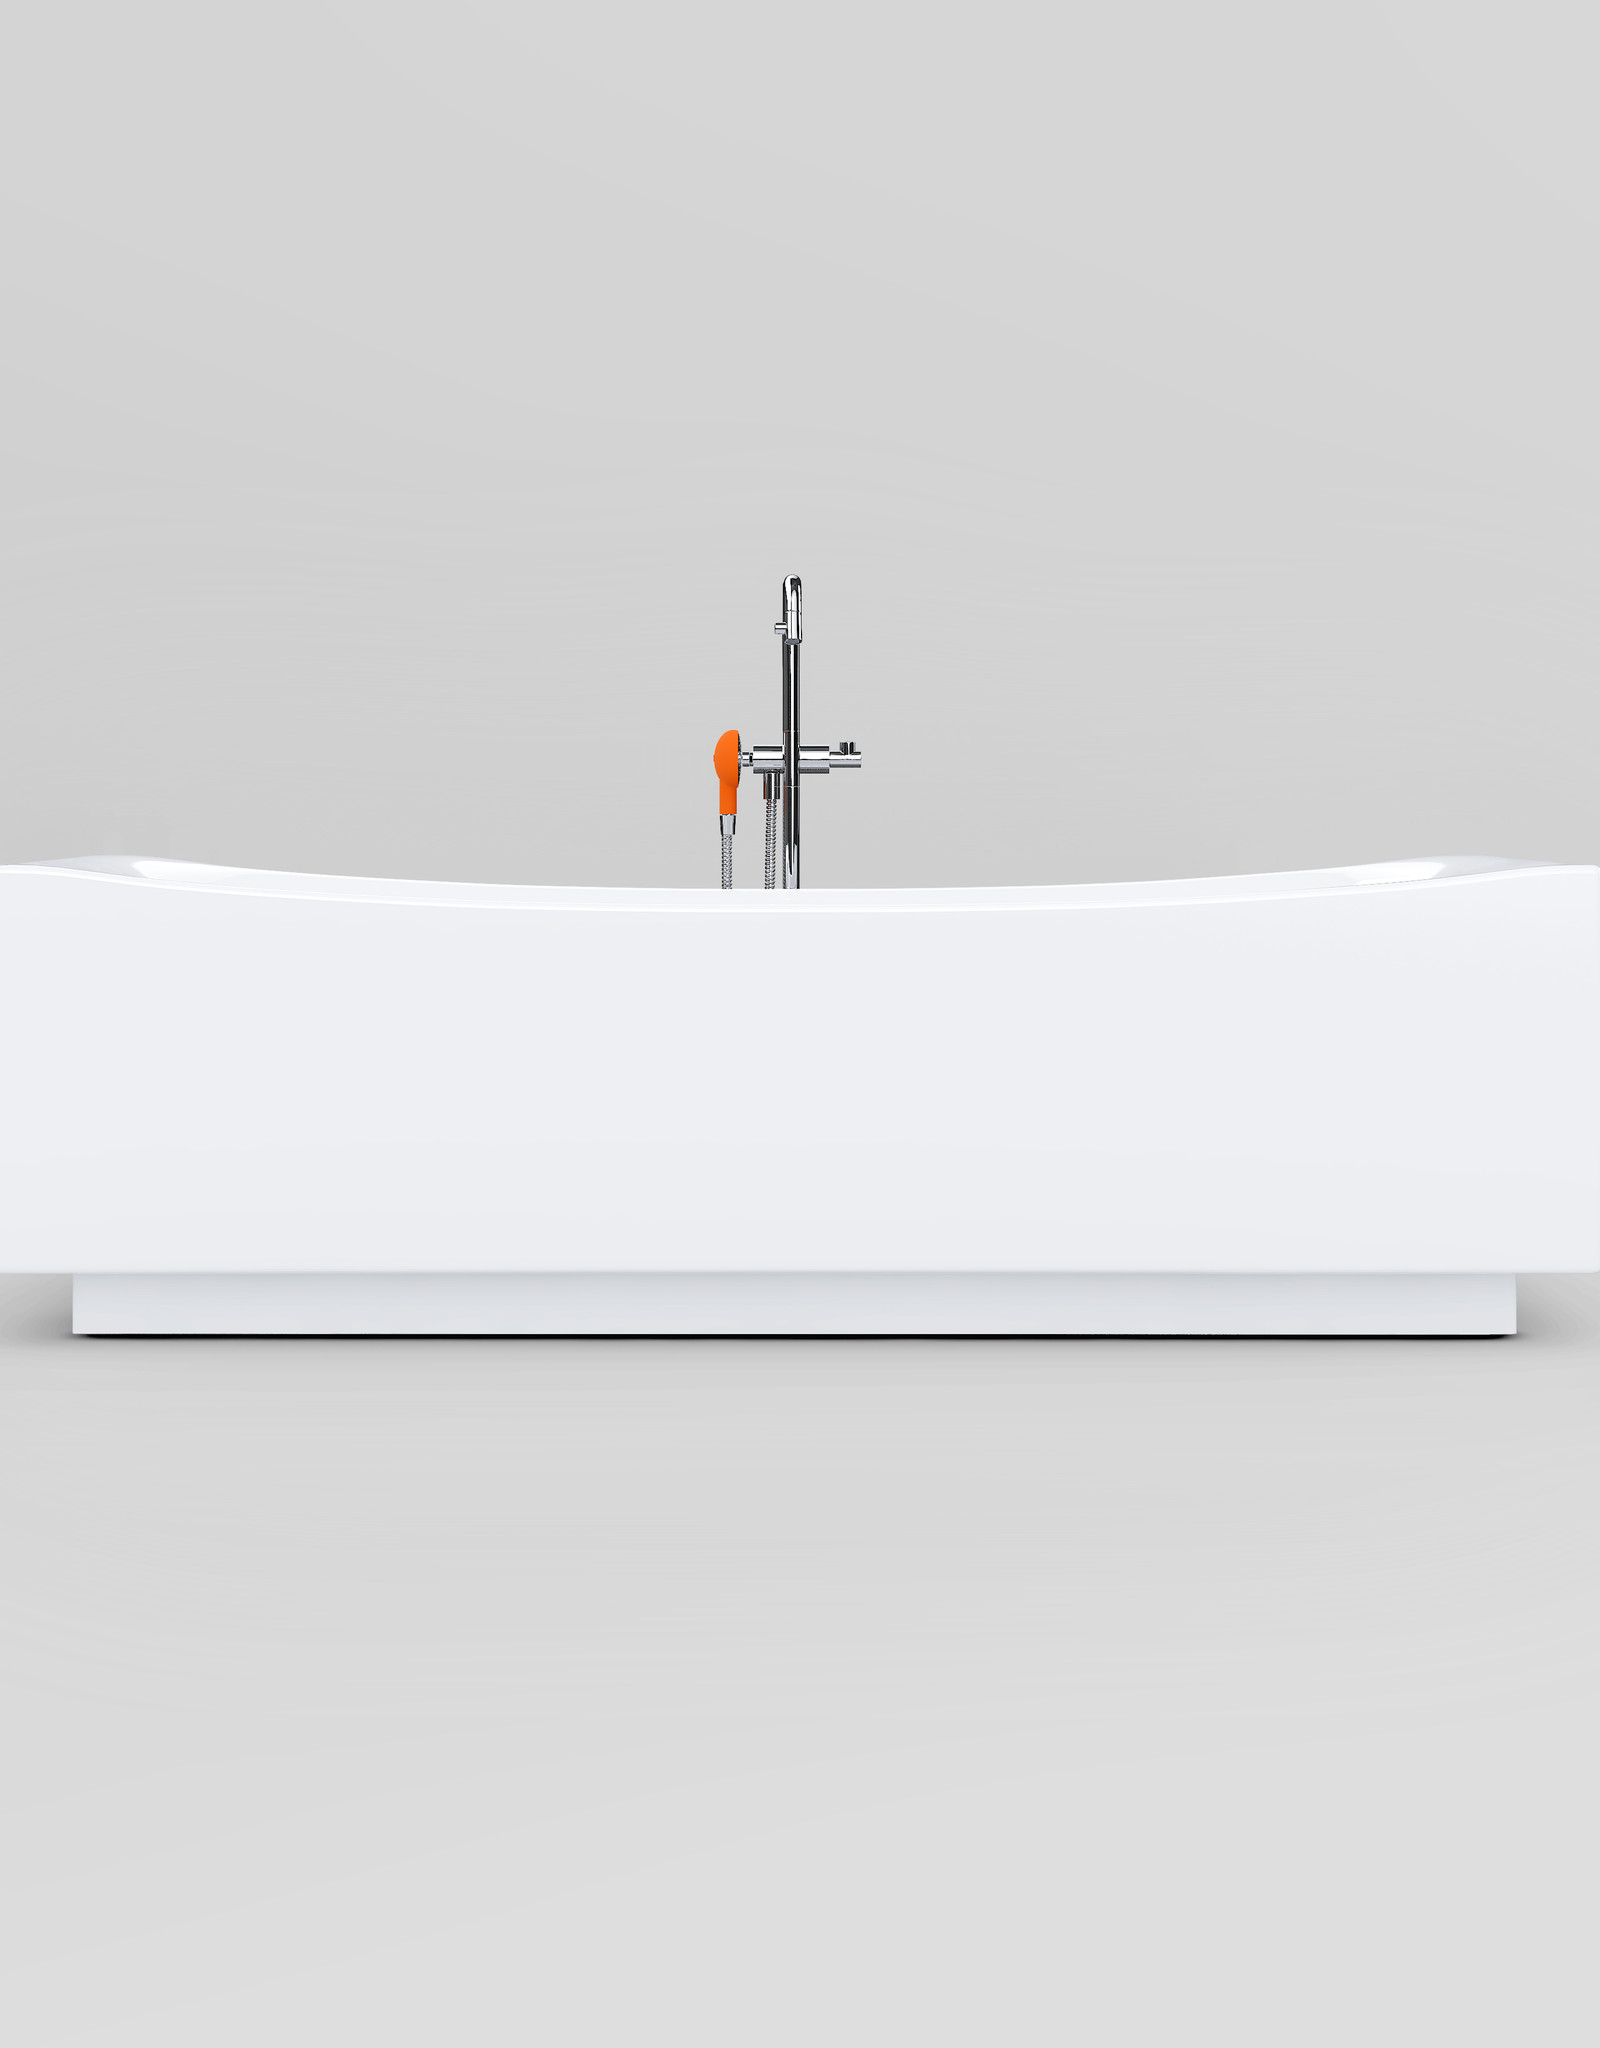 Hammock freestanding bathtub- outlet/product used at a fair